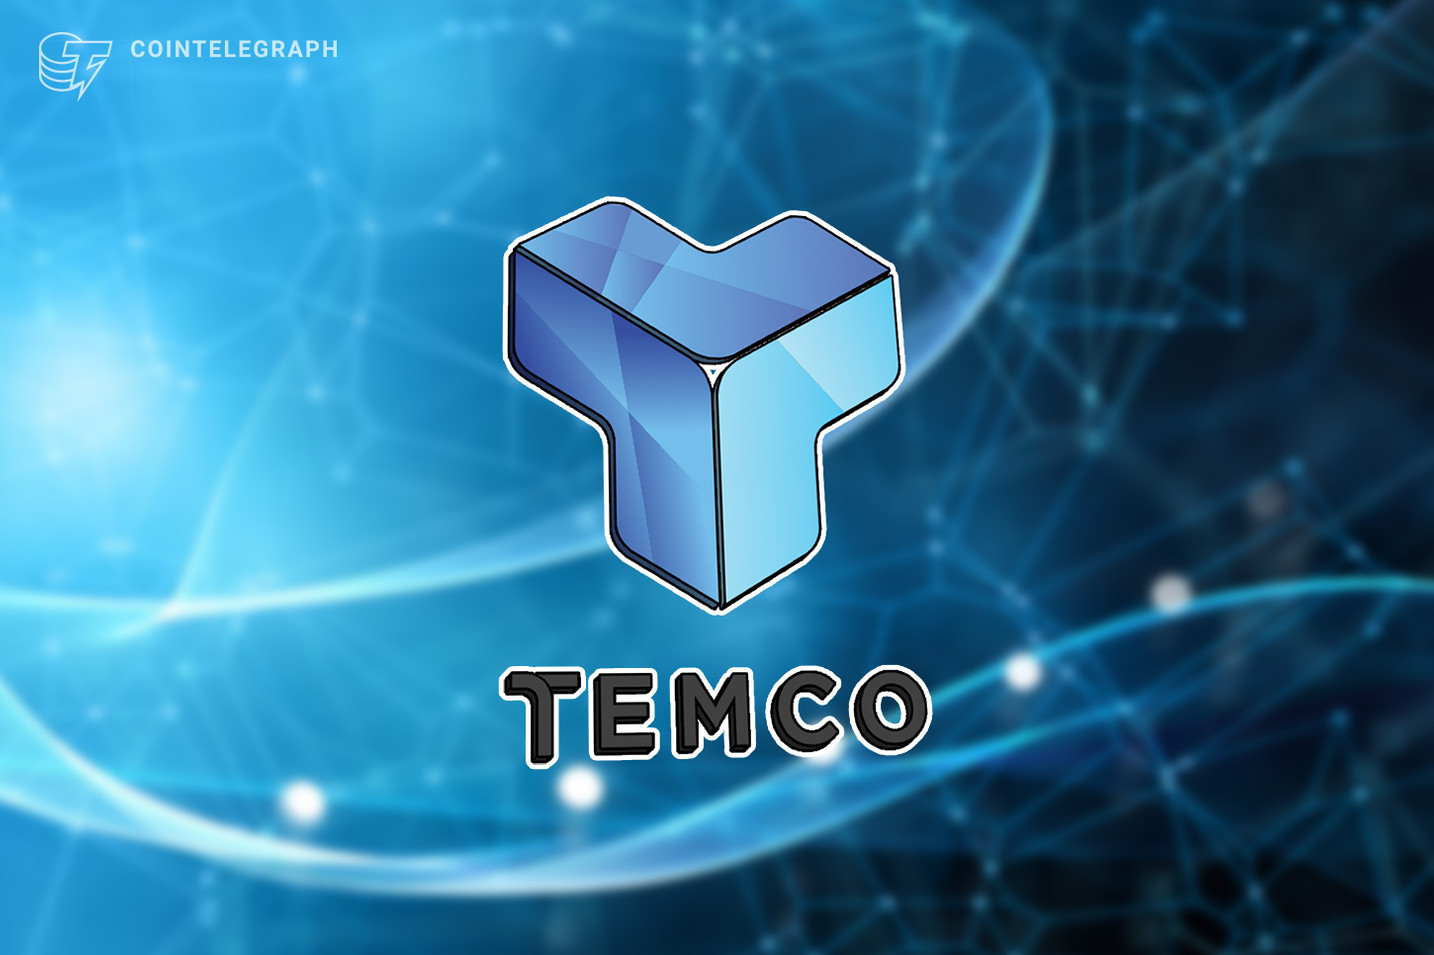 World's First Bitcoin Based Supply Chain Data Platform, TEMCO  Having Pre-Sale With CoinBene on Dec. 17th